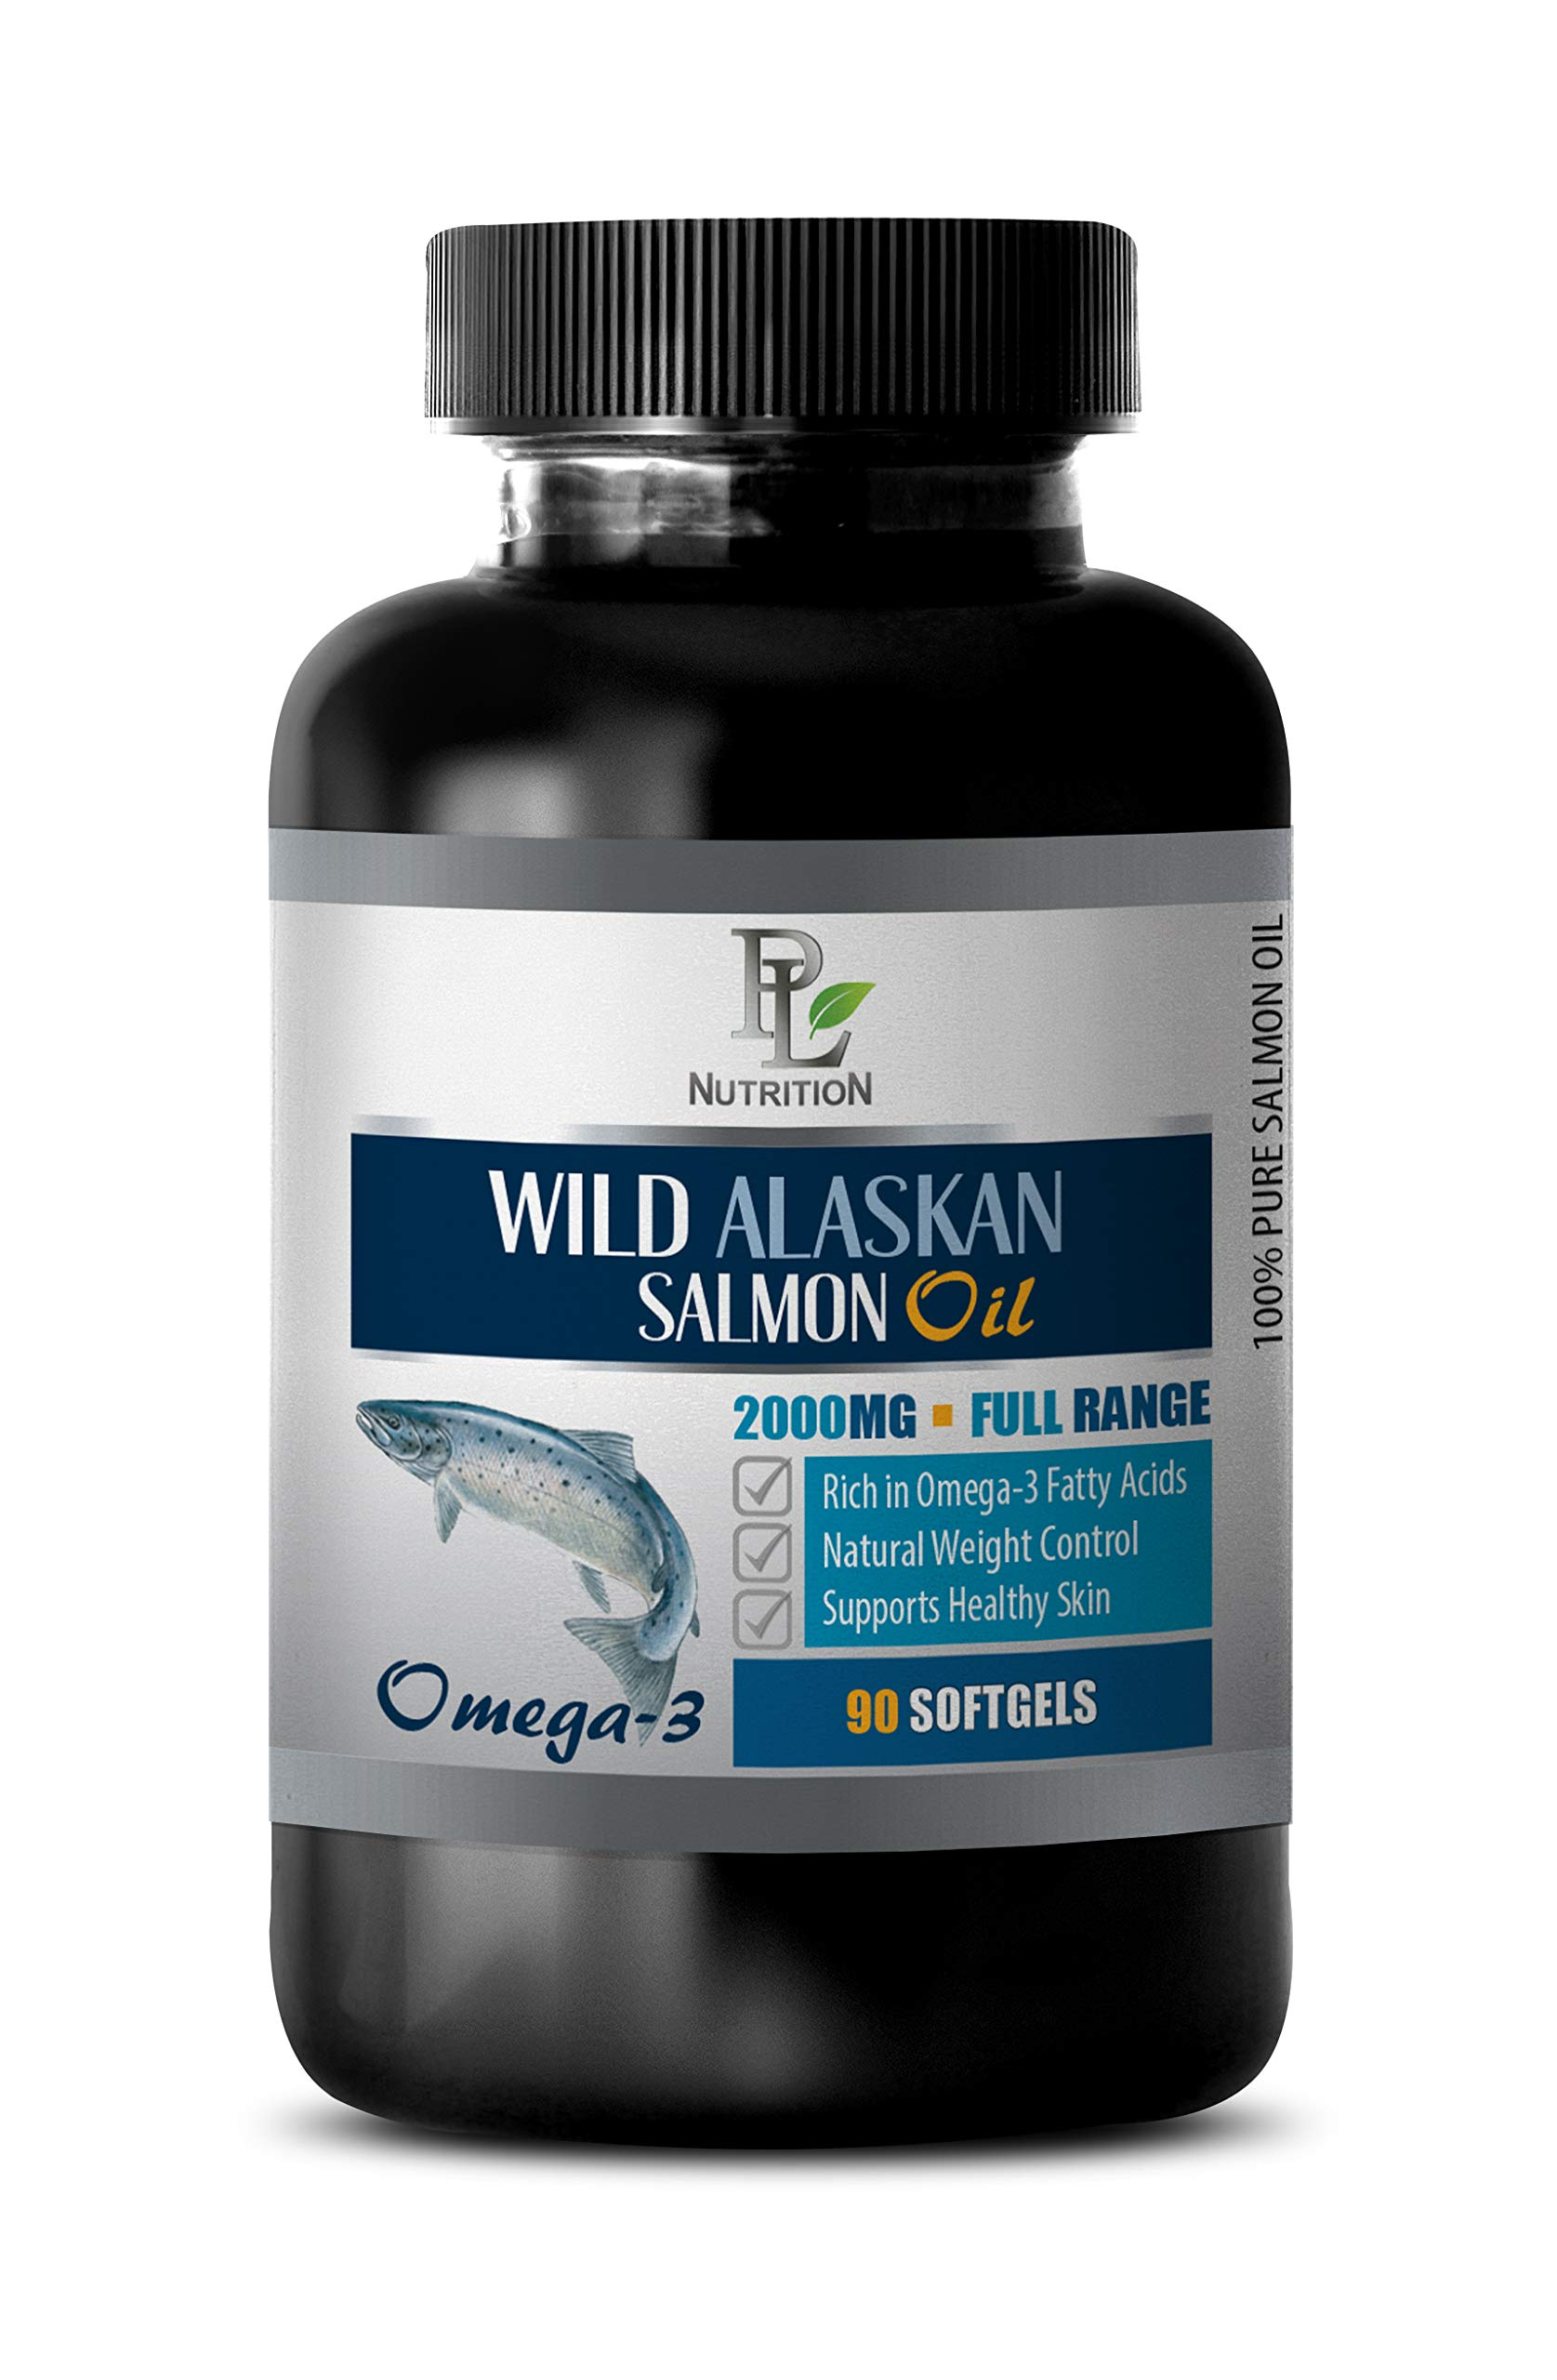 Brain Function Energy Supplement - Wild Alaskan Salmon Oil - Omega 3 2000MG - Full Range - Wild Alaskan Fish Oil - 1 Bottle 90 Softgels by PL NUTRITION